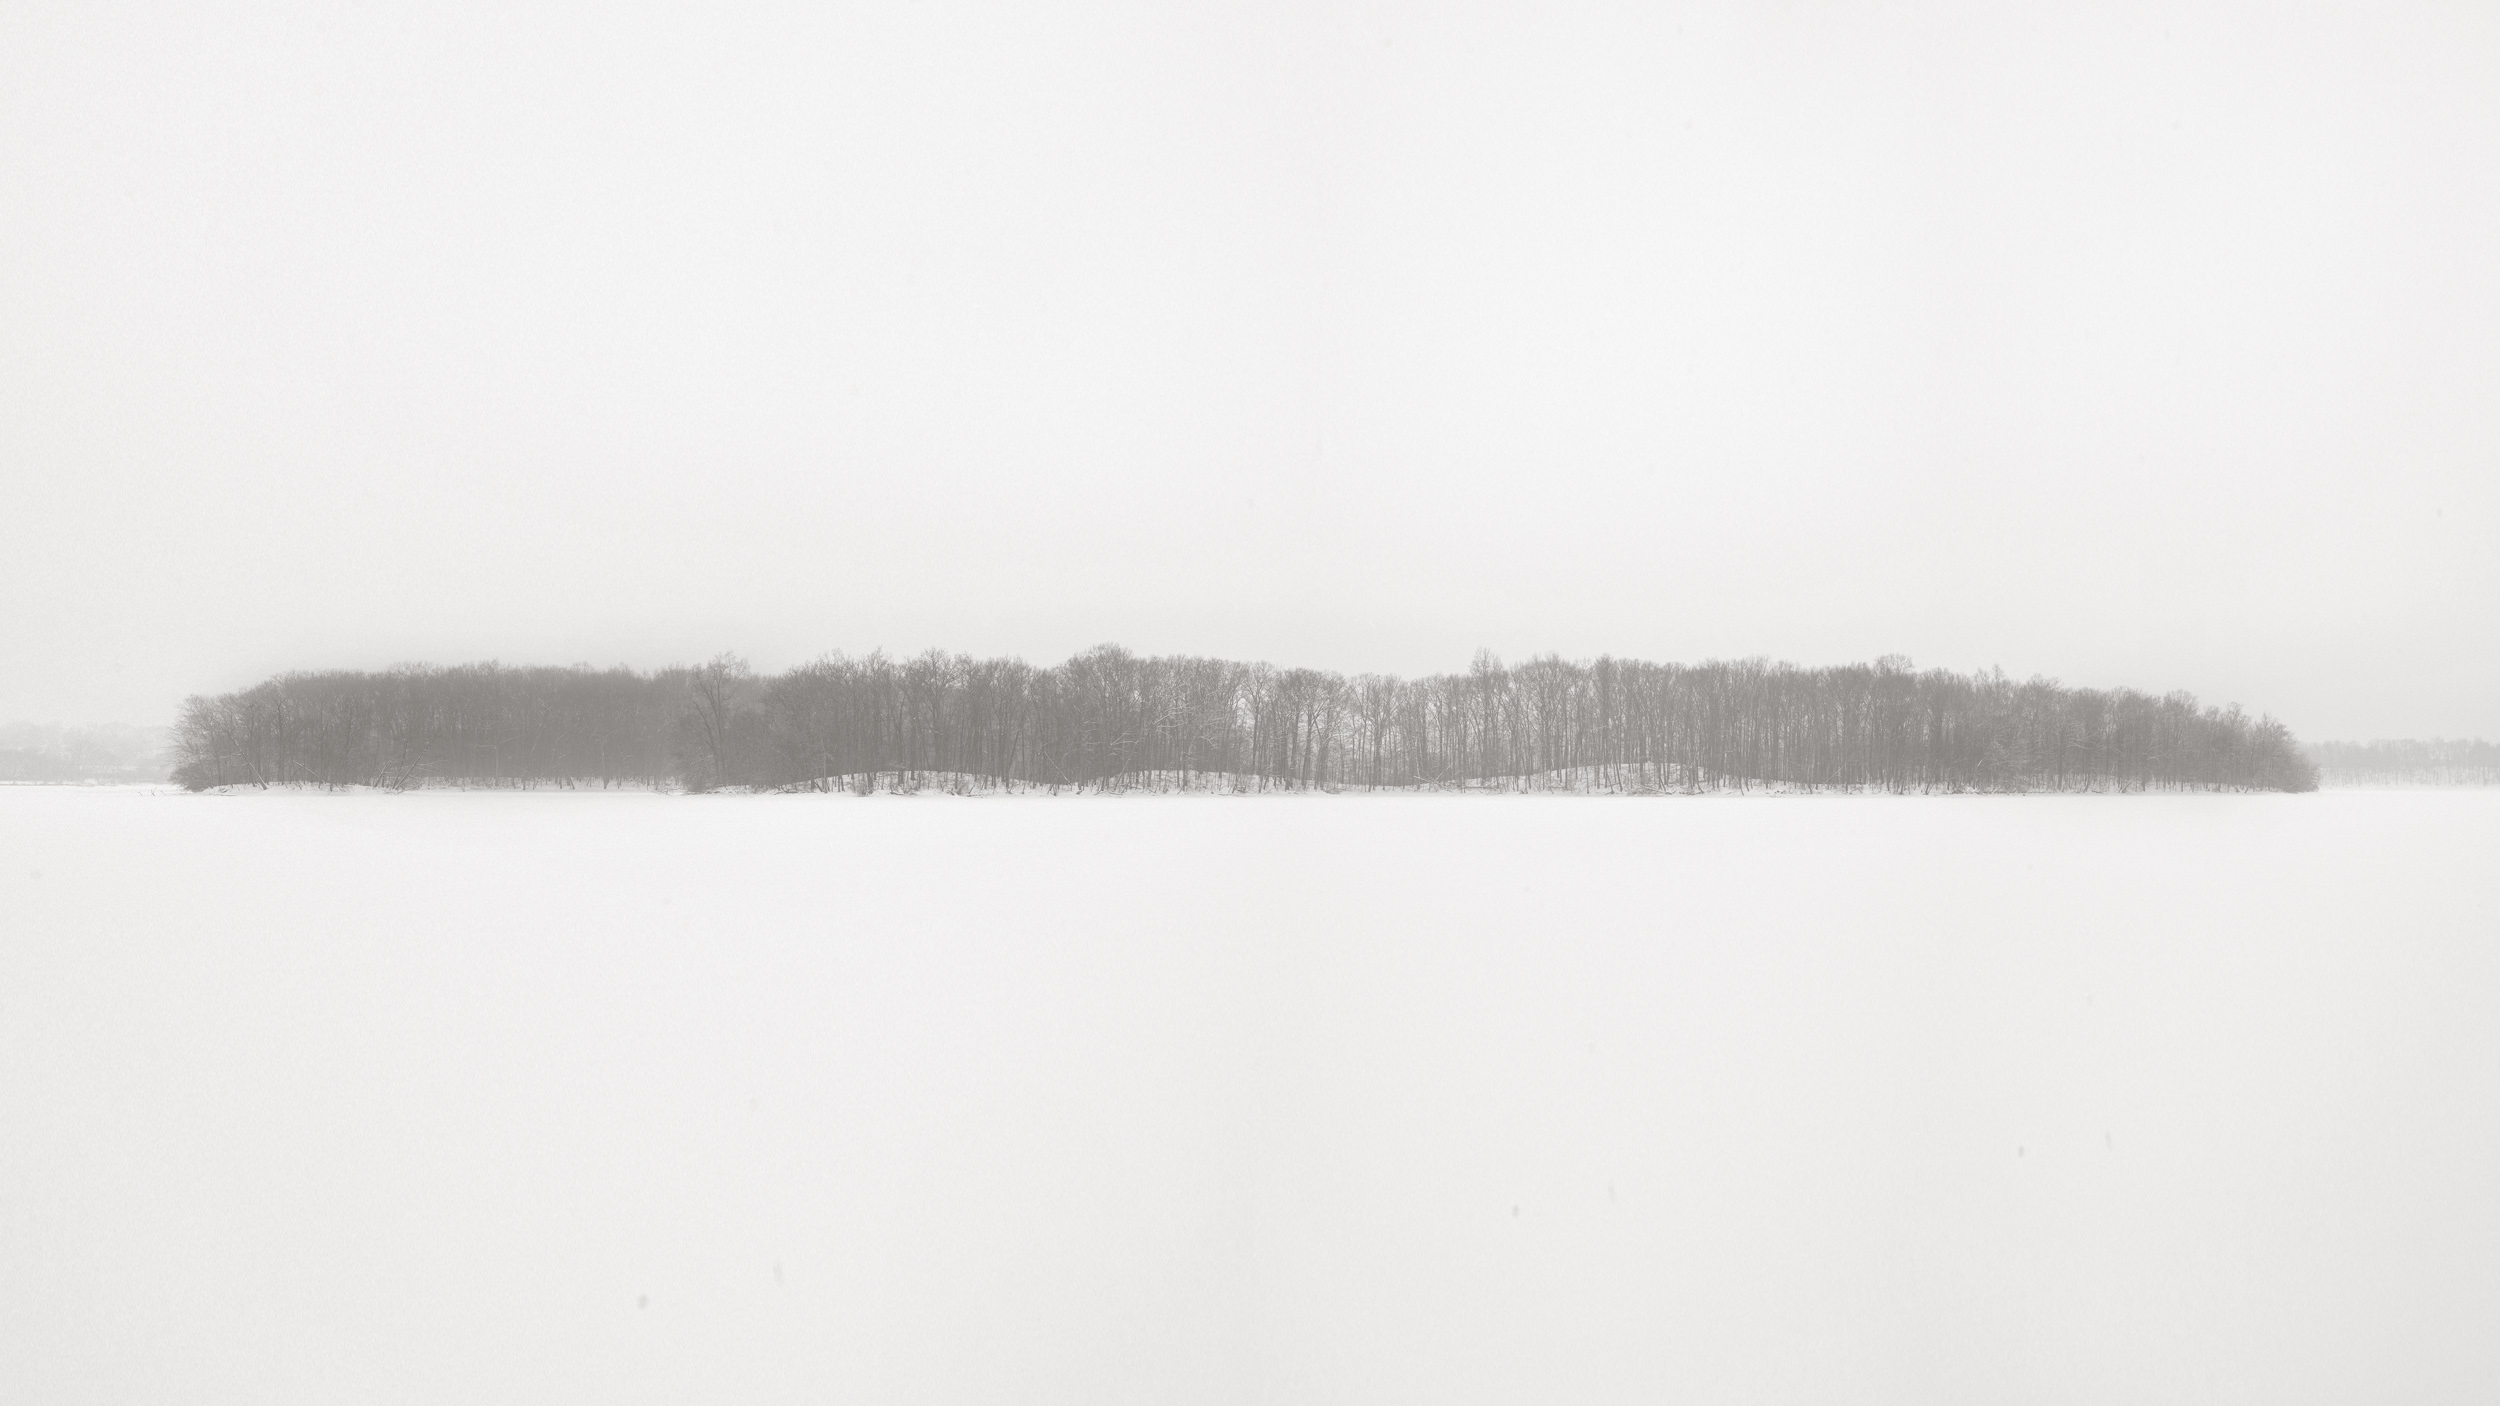 Island on Kent Lake from Turtlehead Point. Eight inches had already fallen overnight and the morning promised a few more. Snow was falling hard while I took this photo. Michigan Landscape Photography.